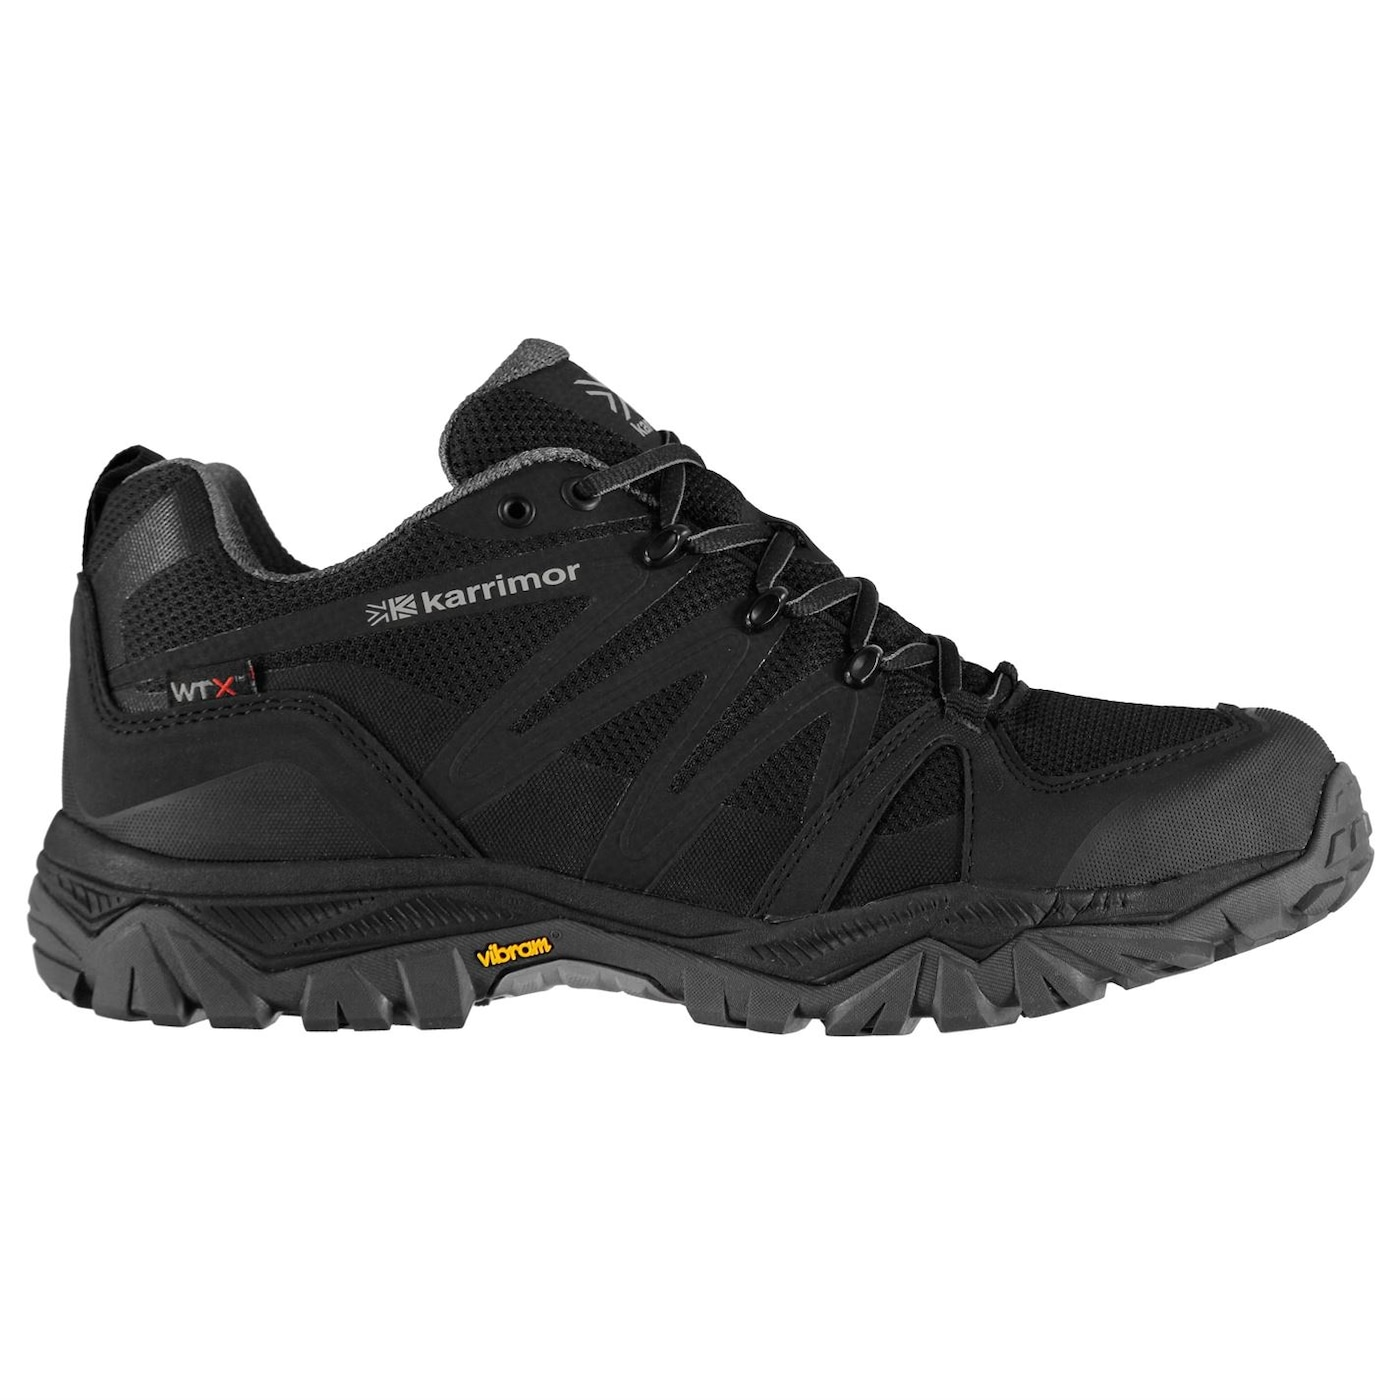 Men's walking shoes Karrimor Ocelot